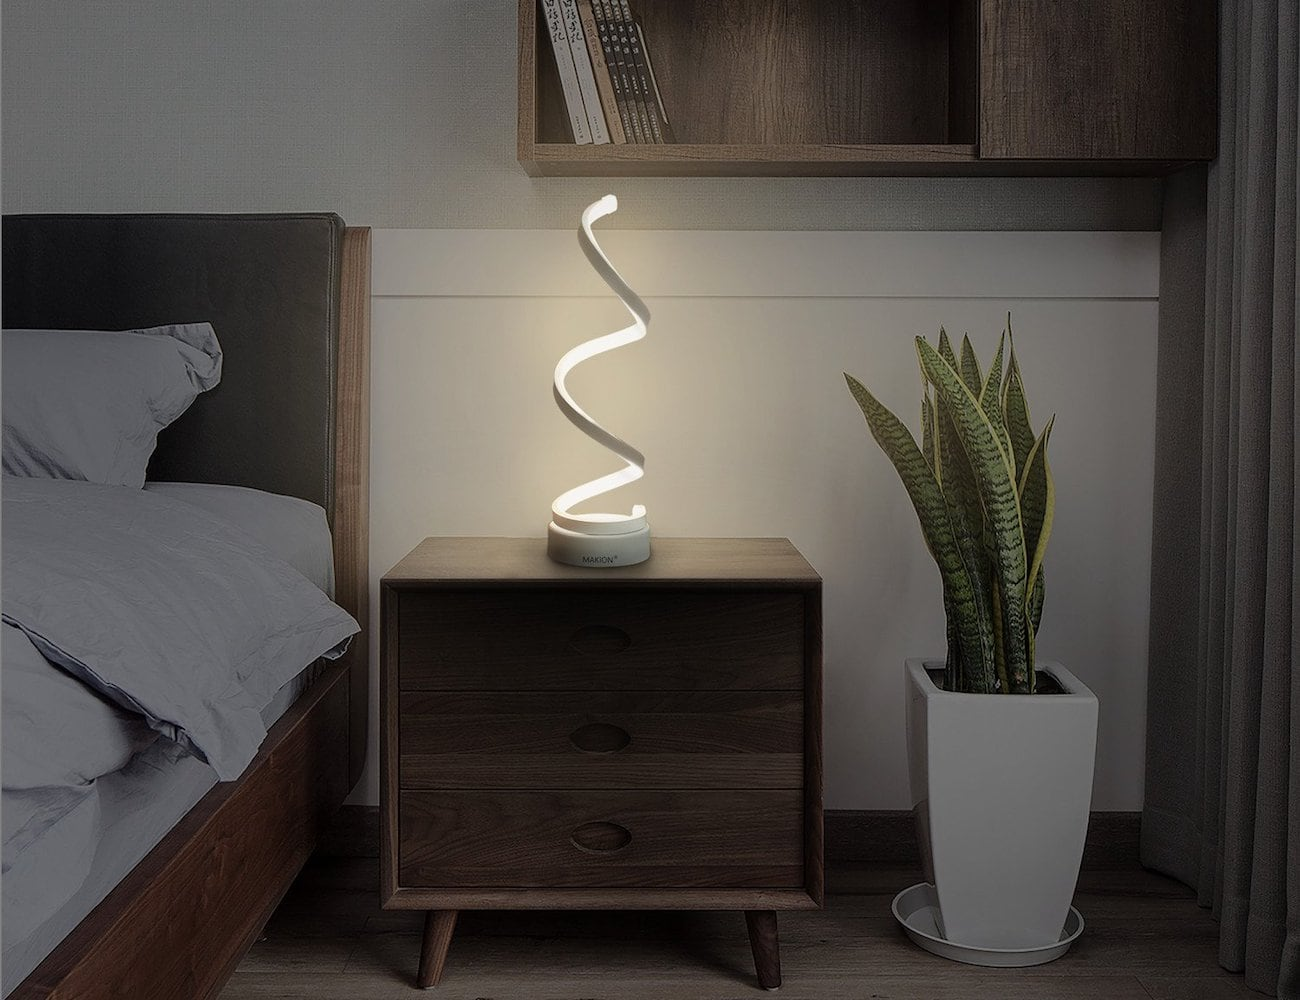 Helix Spiral Decor Lamp provides three different colors of light